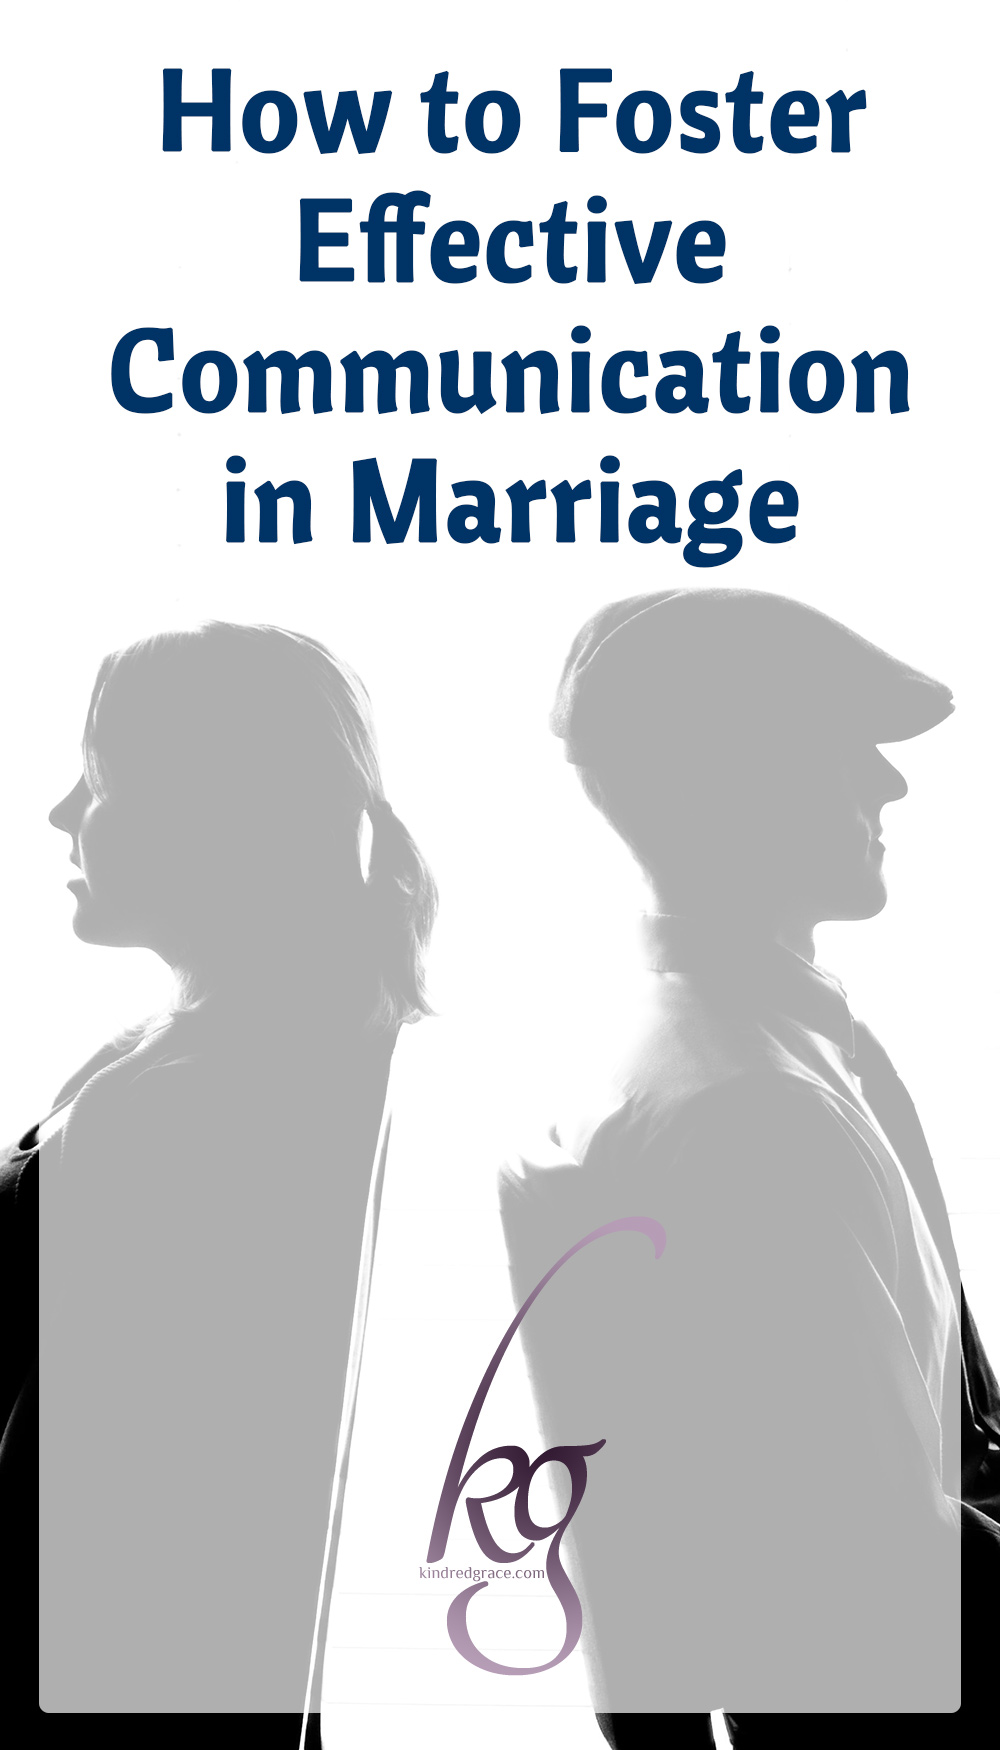 The pursuit of effective communication in marriage is like a treasure hunt that takes extra effort, but yields even greater rewards. Here are two questions that can help.